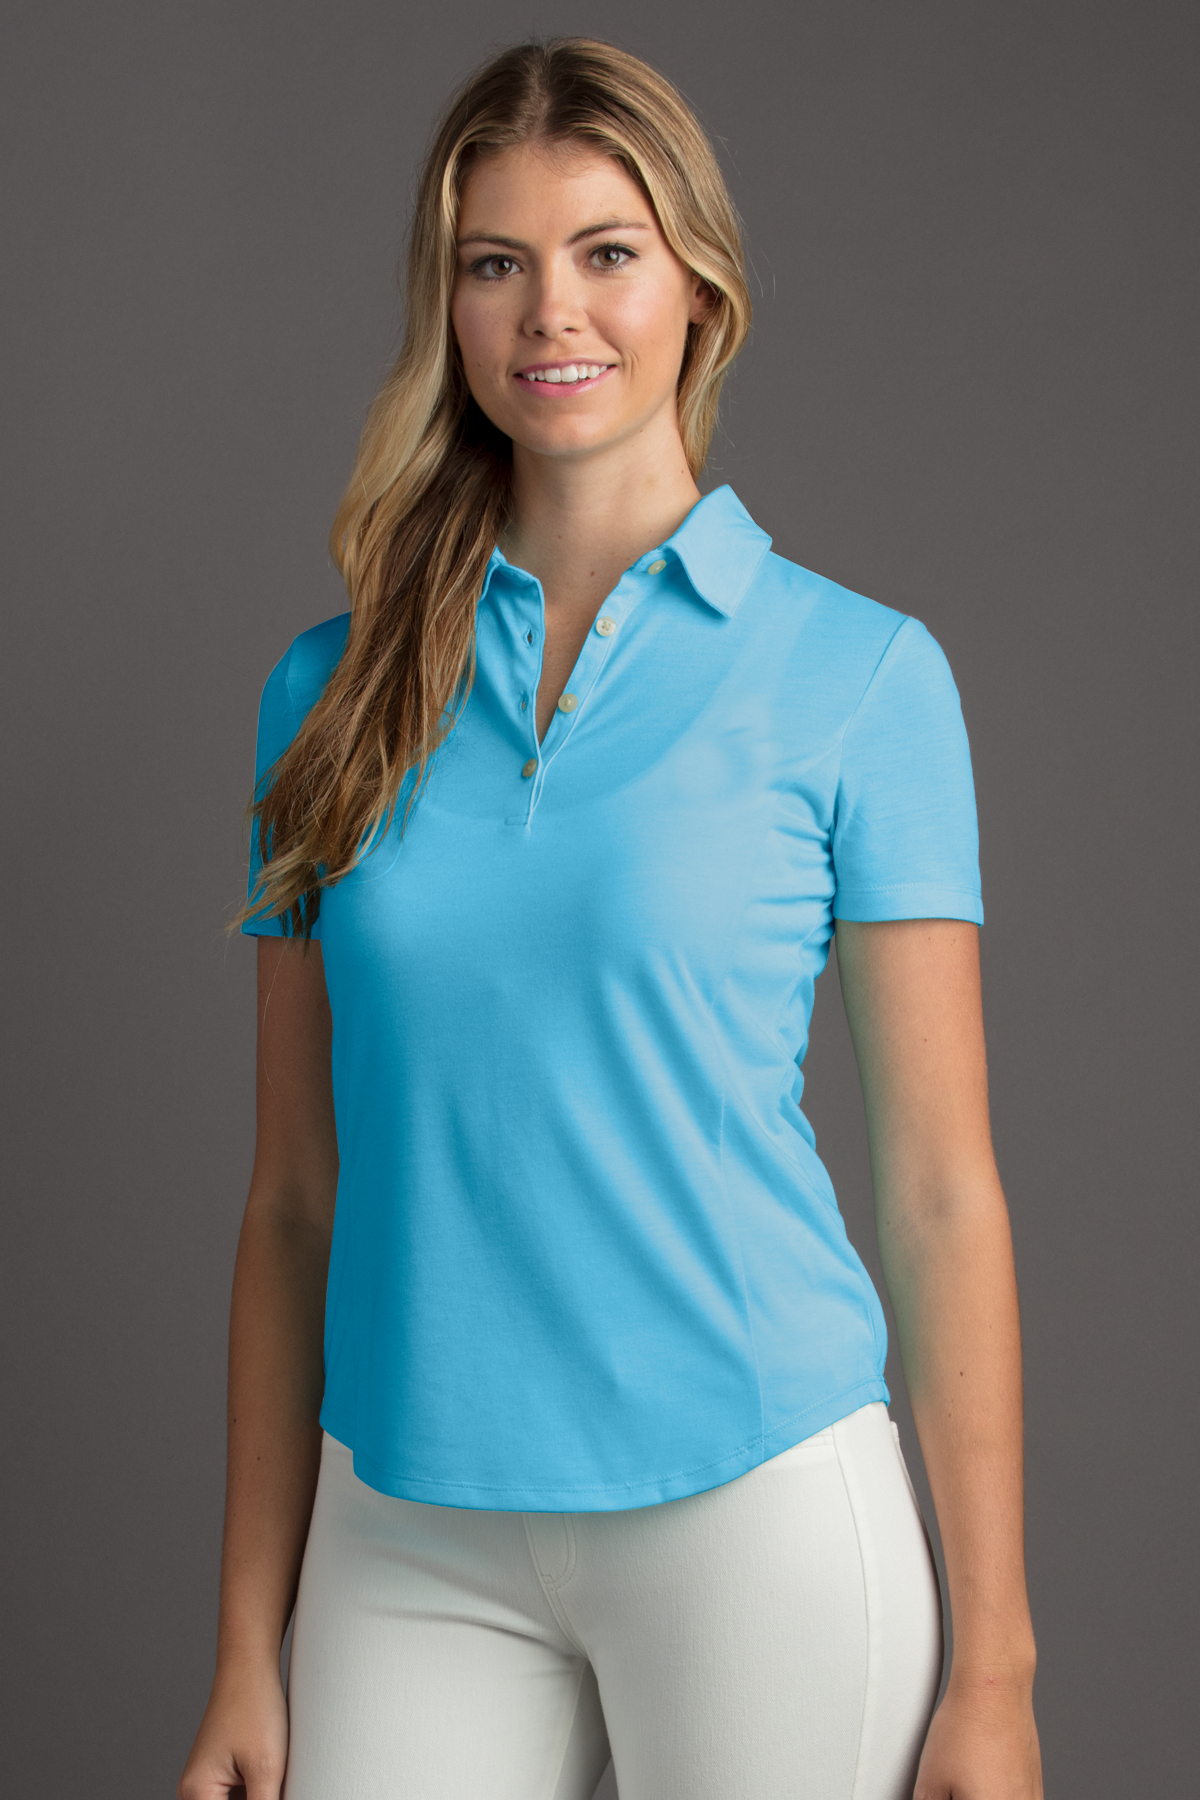 Greg Norman WNS8K466 - Women's Play Dry Foreward Series ...